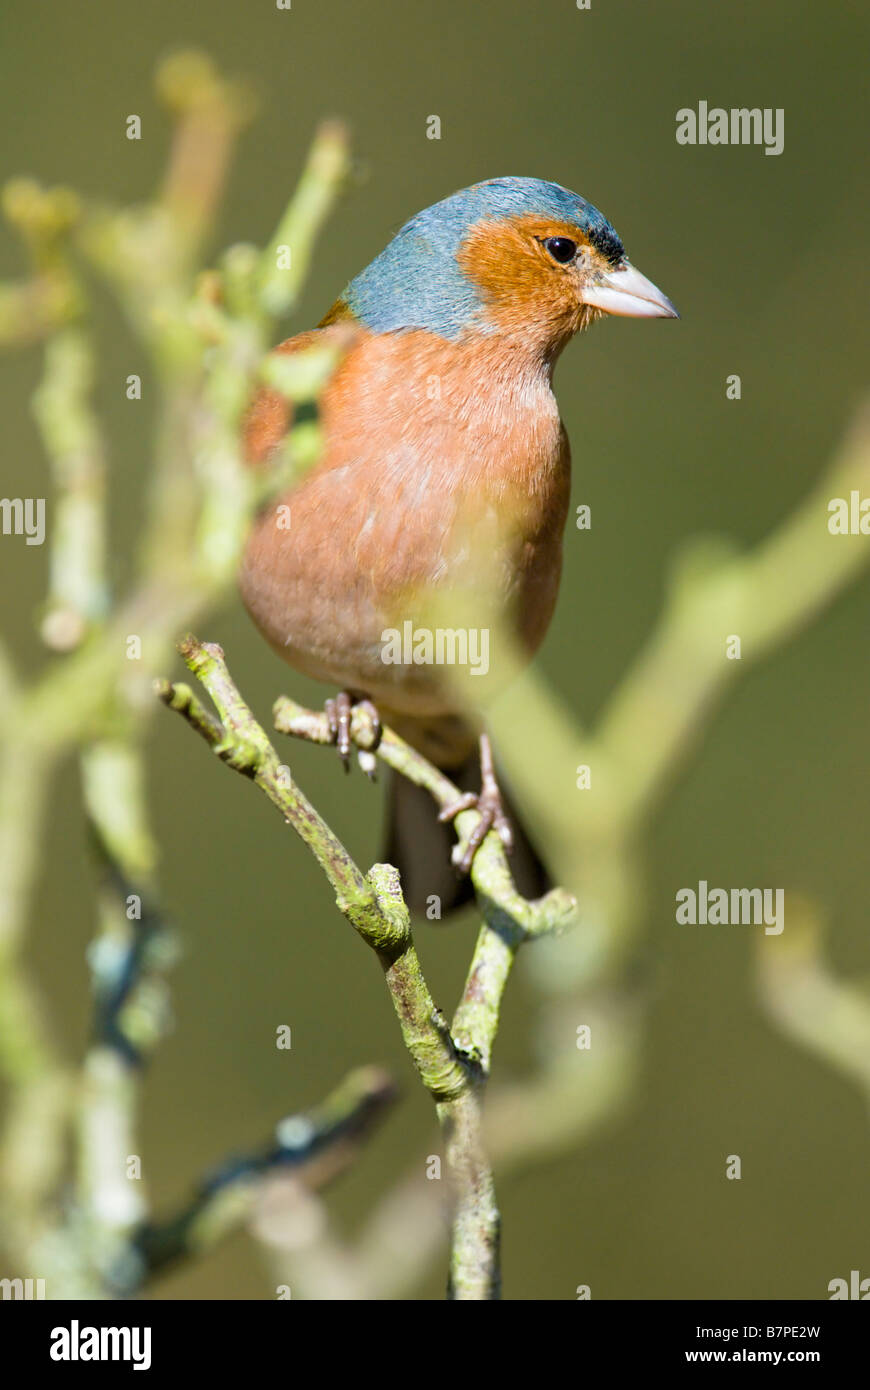 Caffinch perched in branches - Stock Image